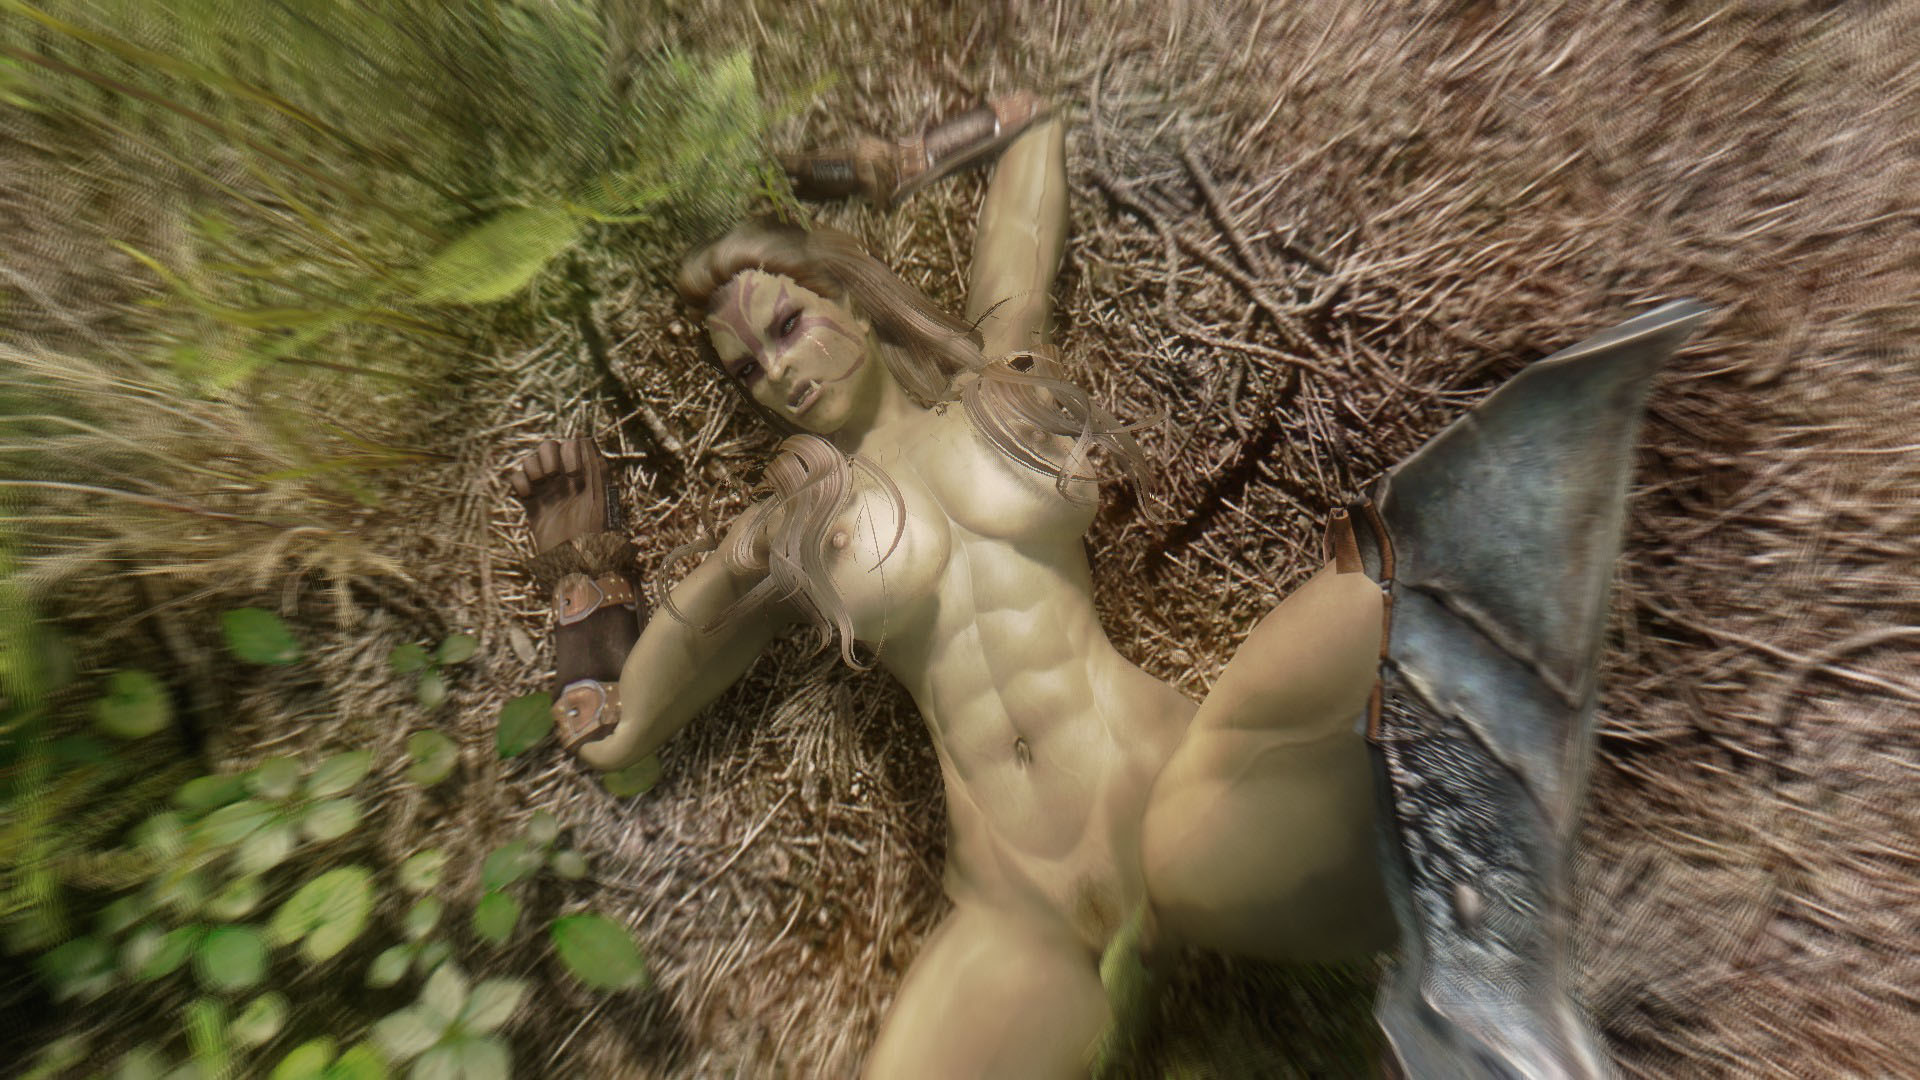 Anime skyrim porn games sexy orc girls  adult download